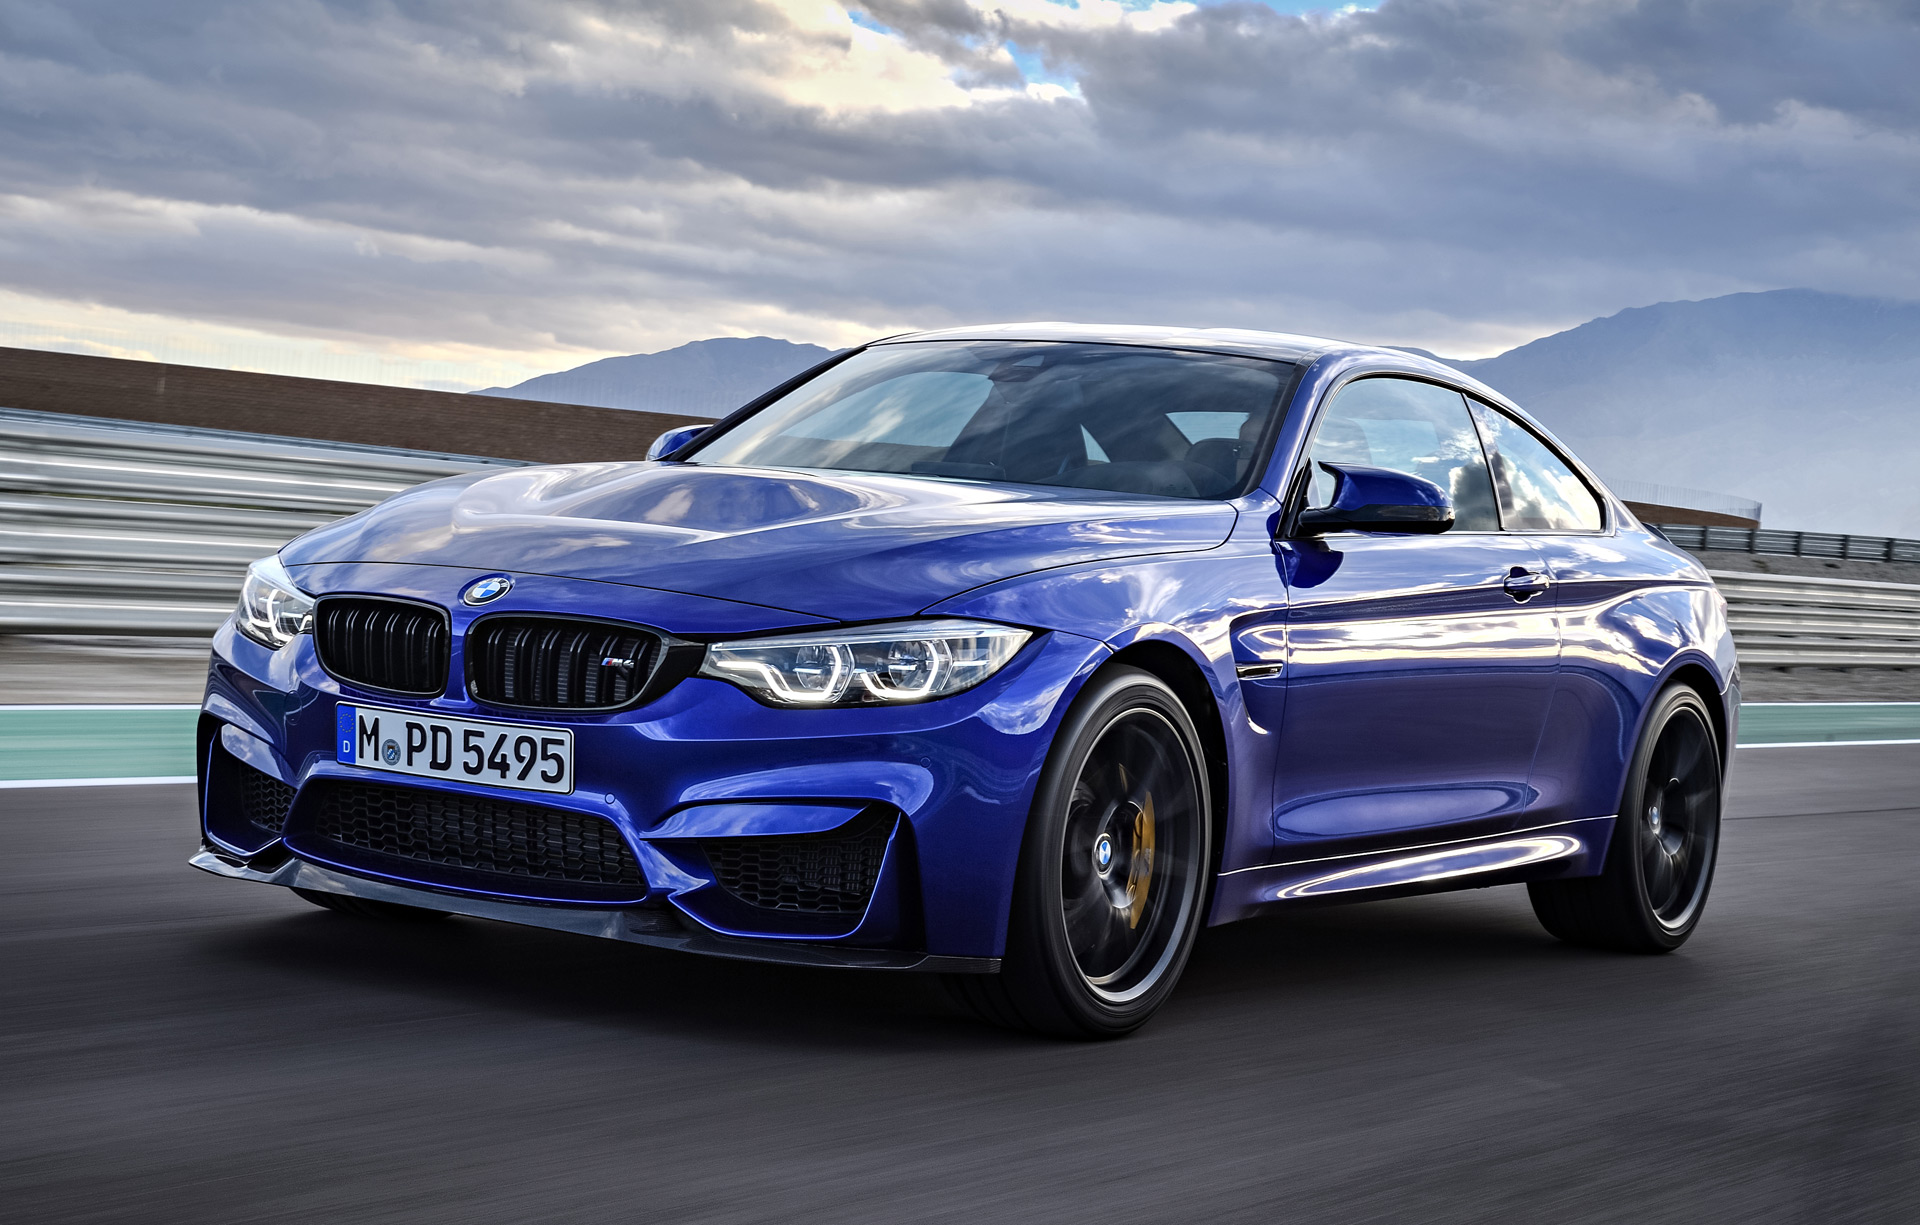 454-horsepower BMW M4 CS debuts at 2017 Shanghai auto show